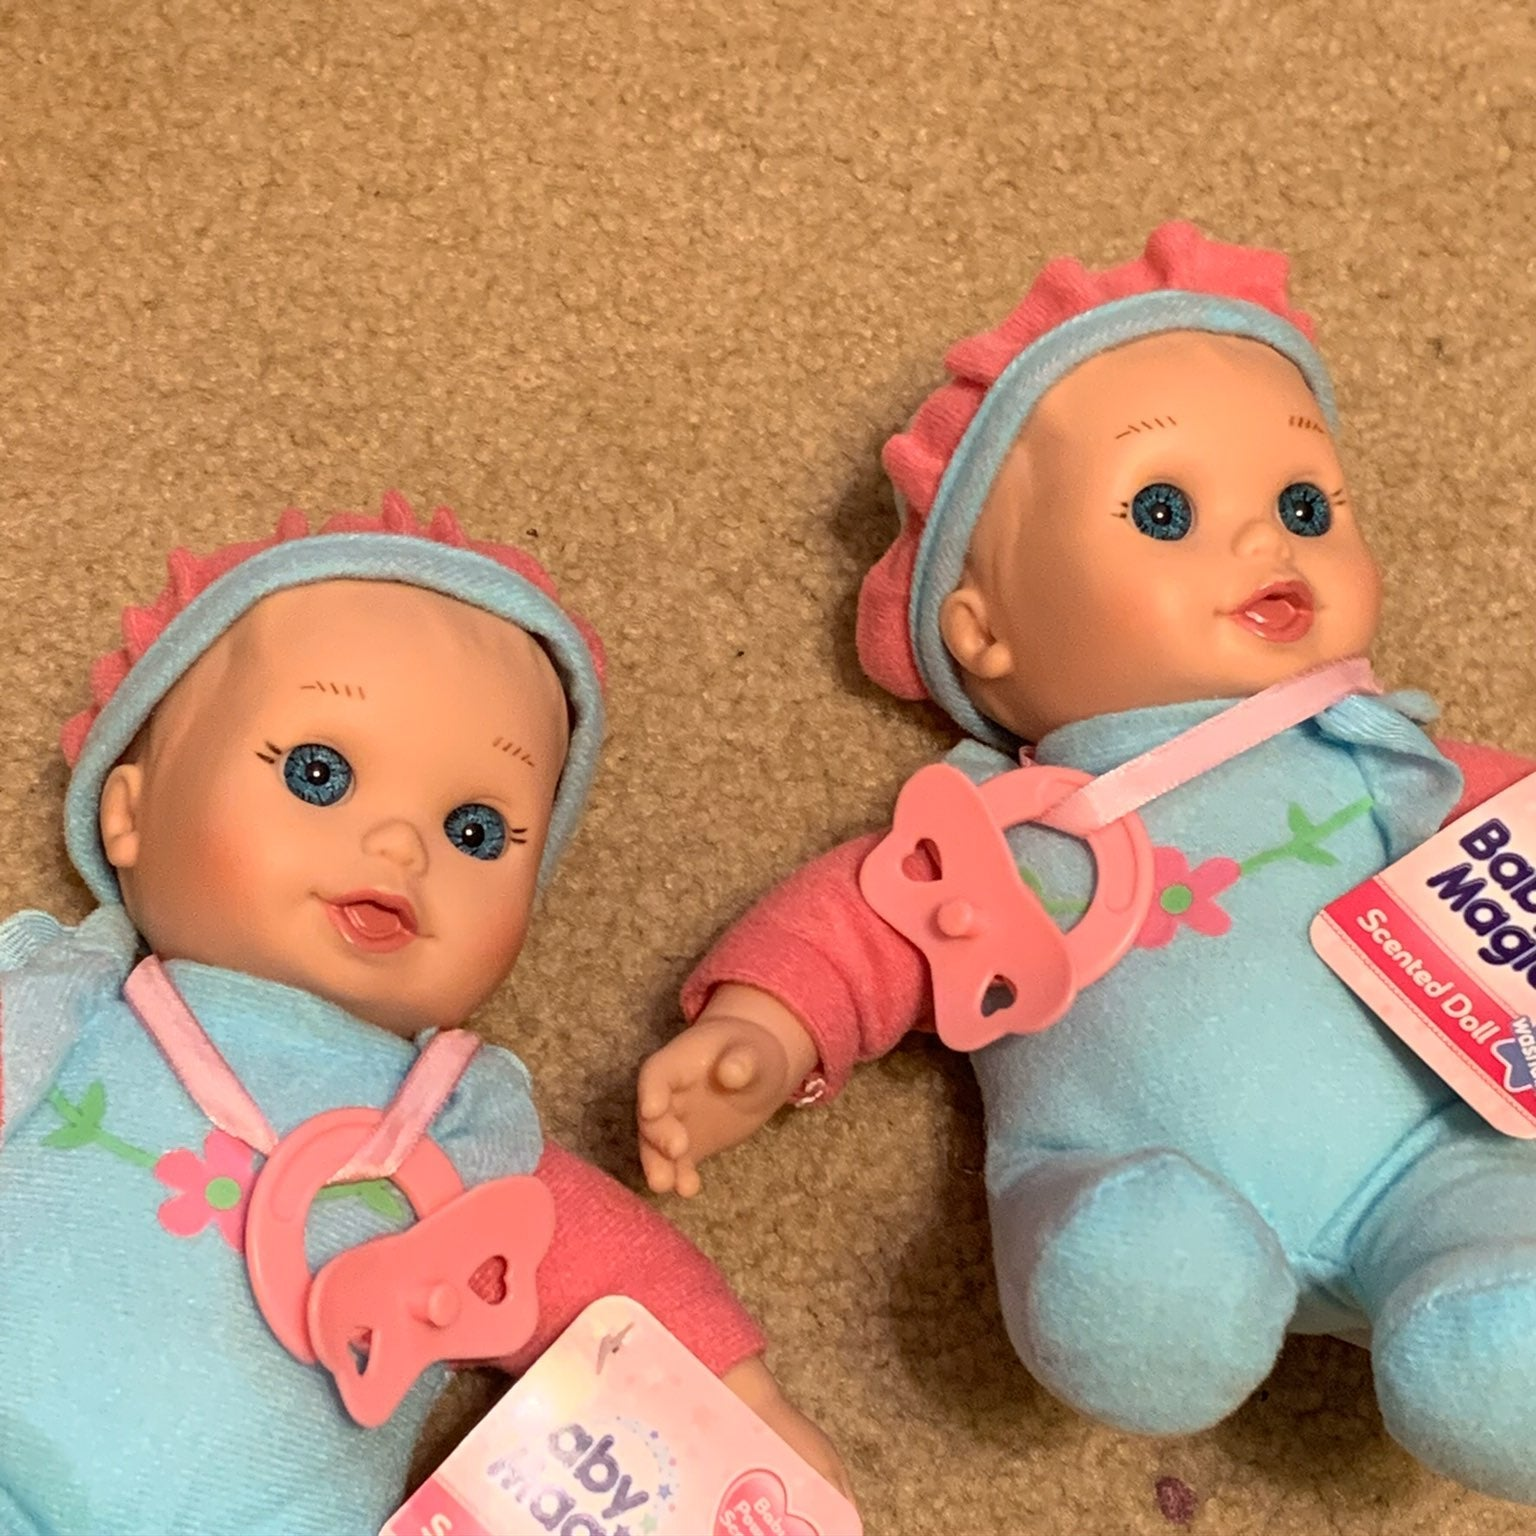 2 NEW Baby Magic scented babydolls w/pac